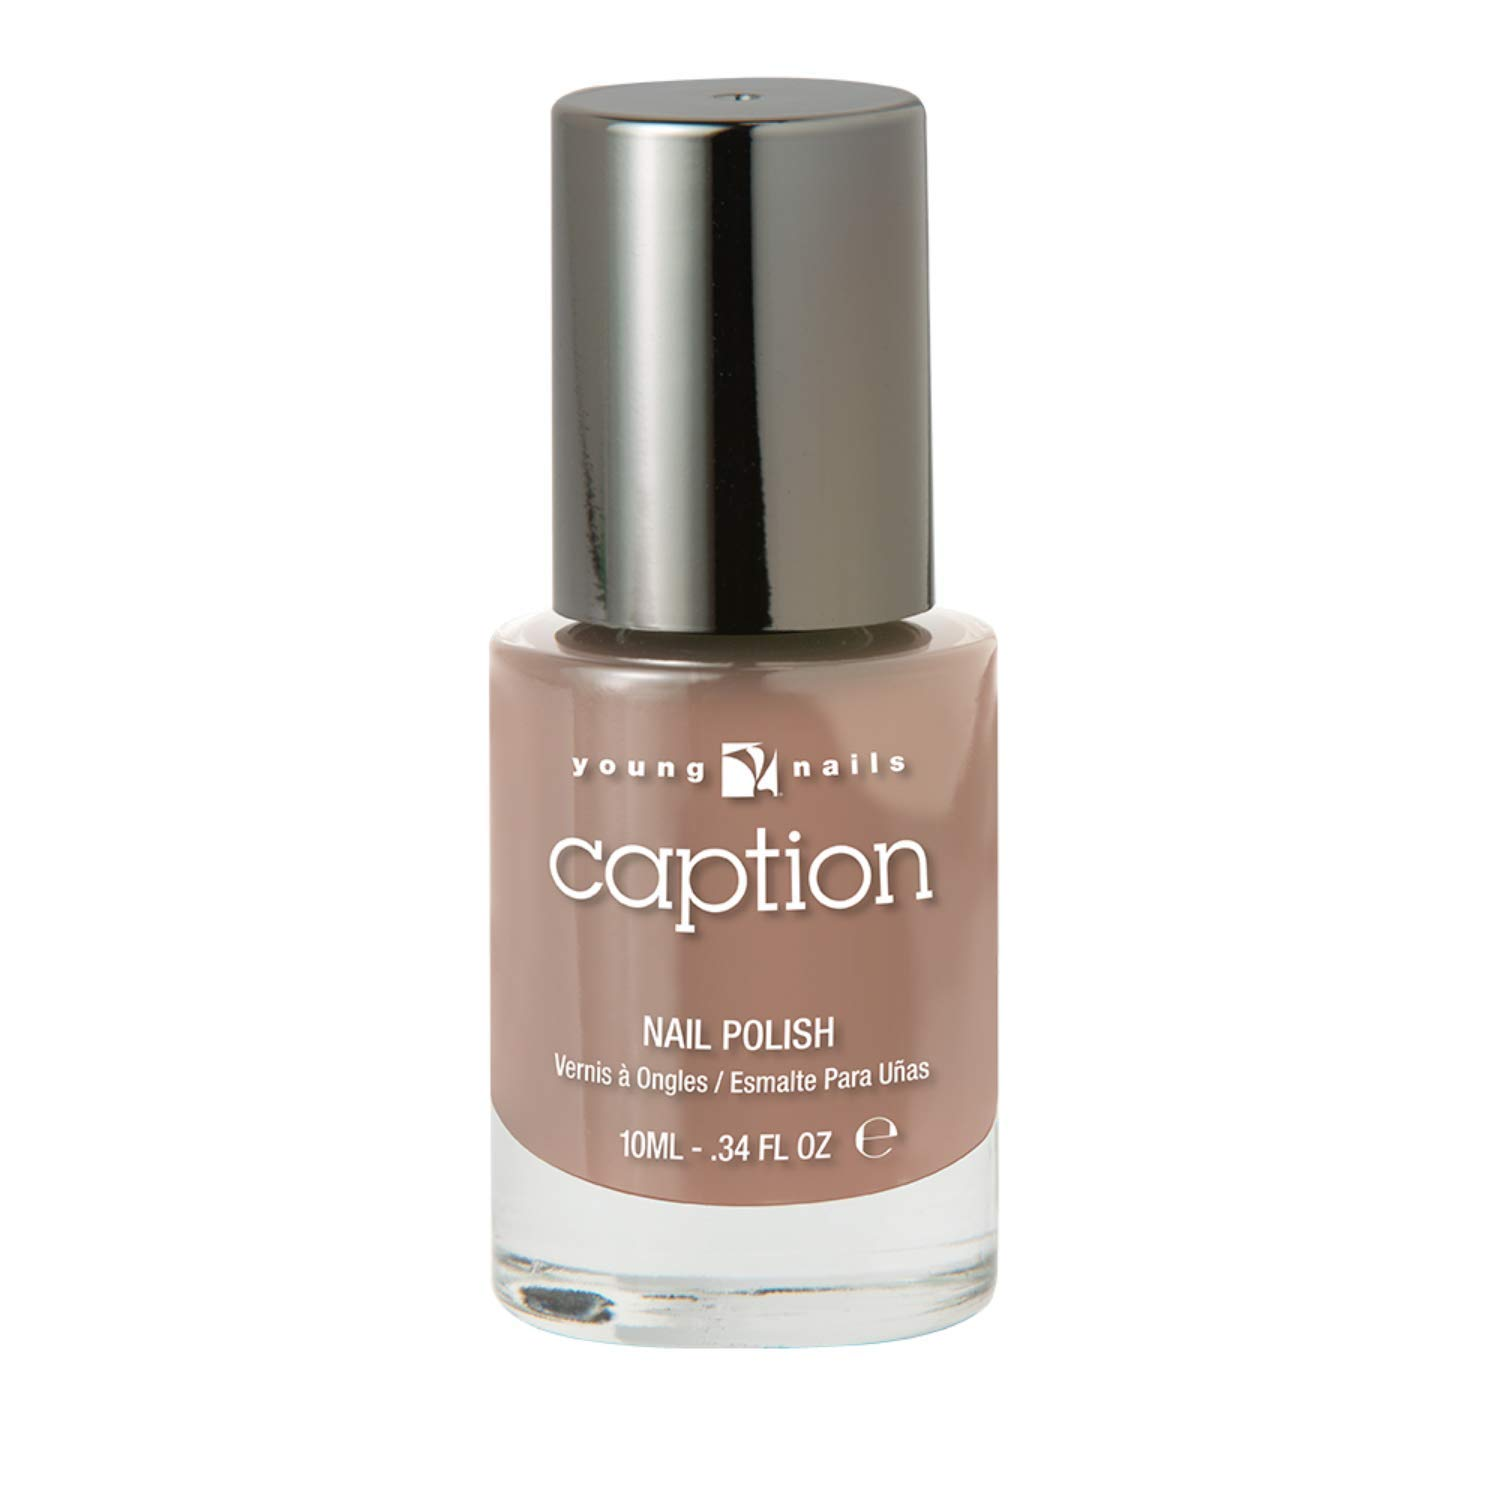 Young Nails Caption Nail Polish, Just a Little Bit in Love